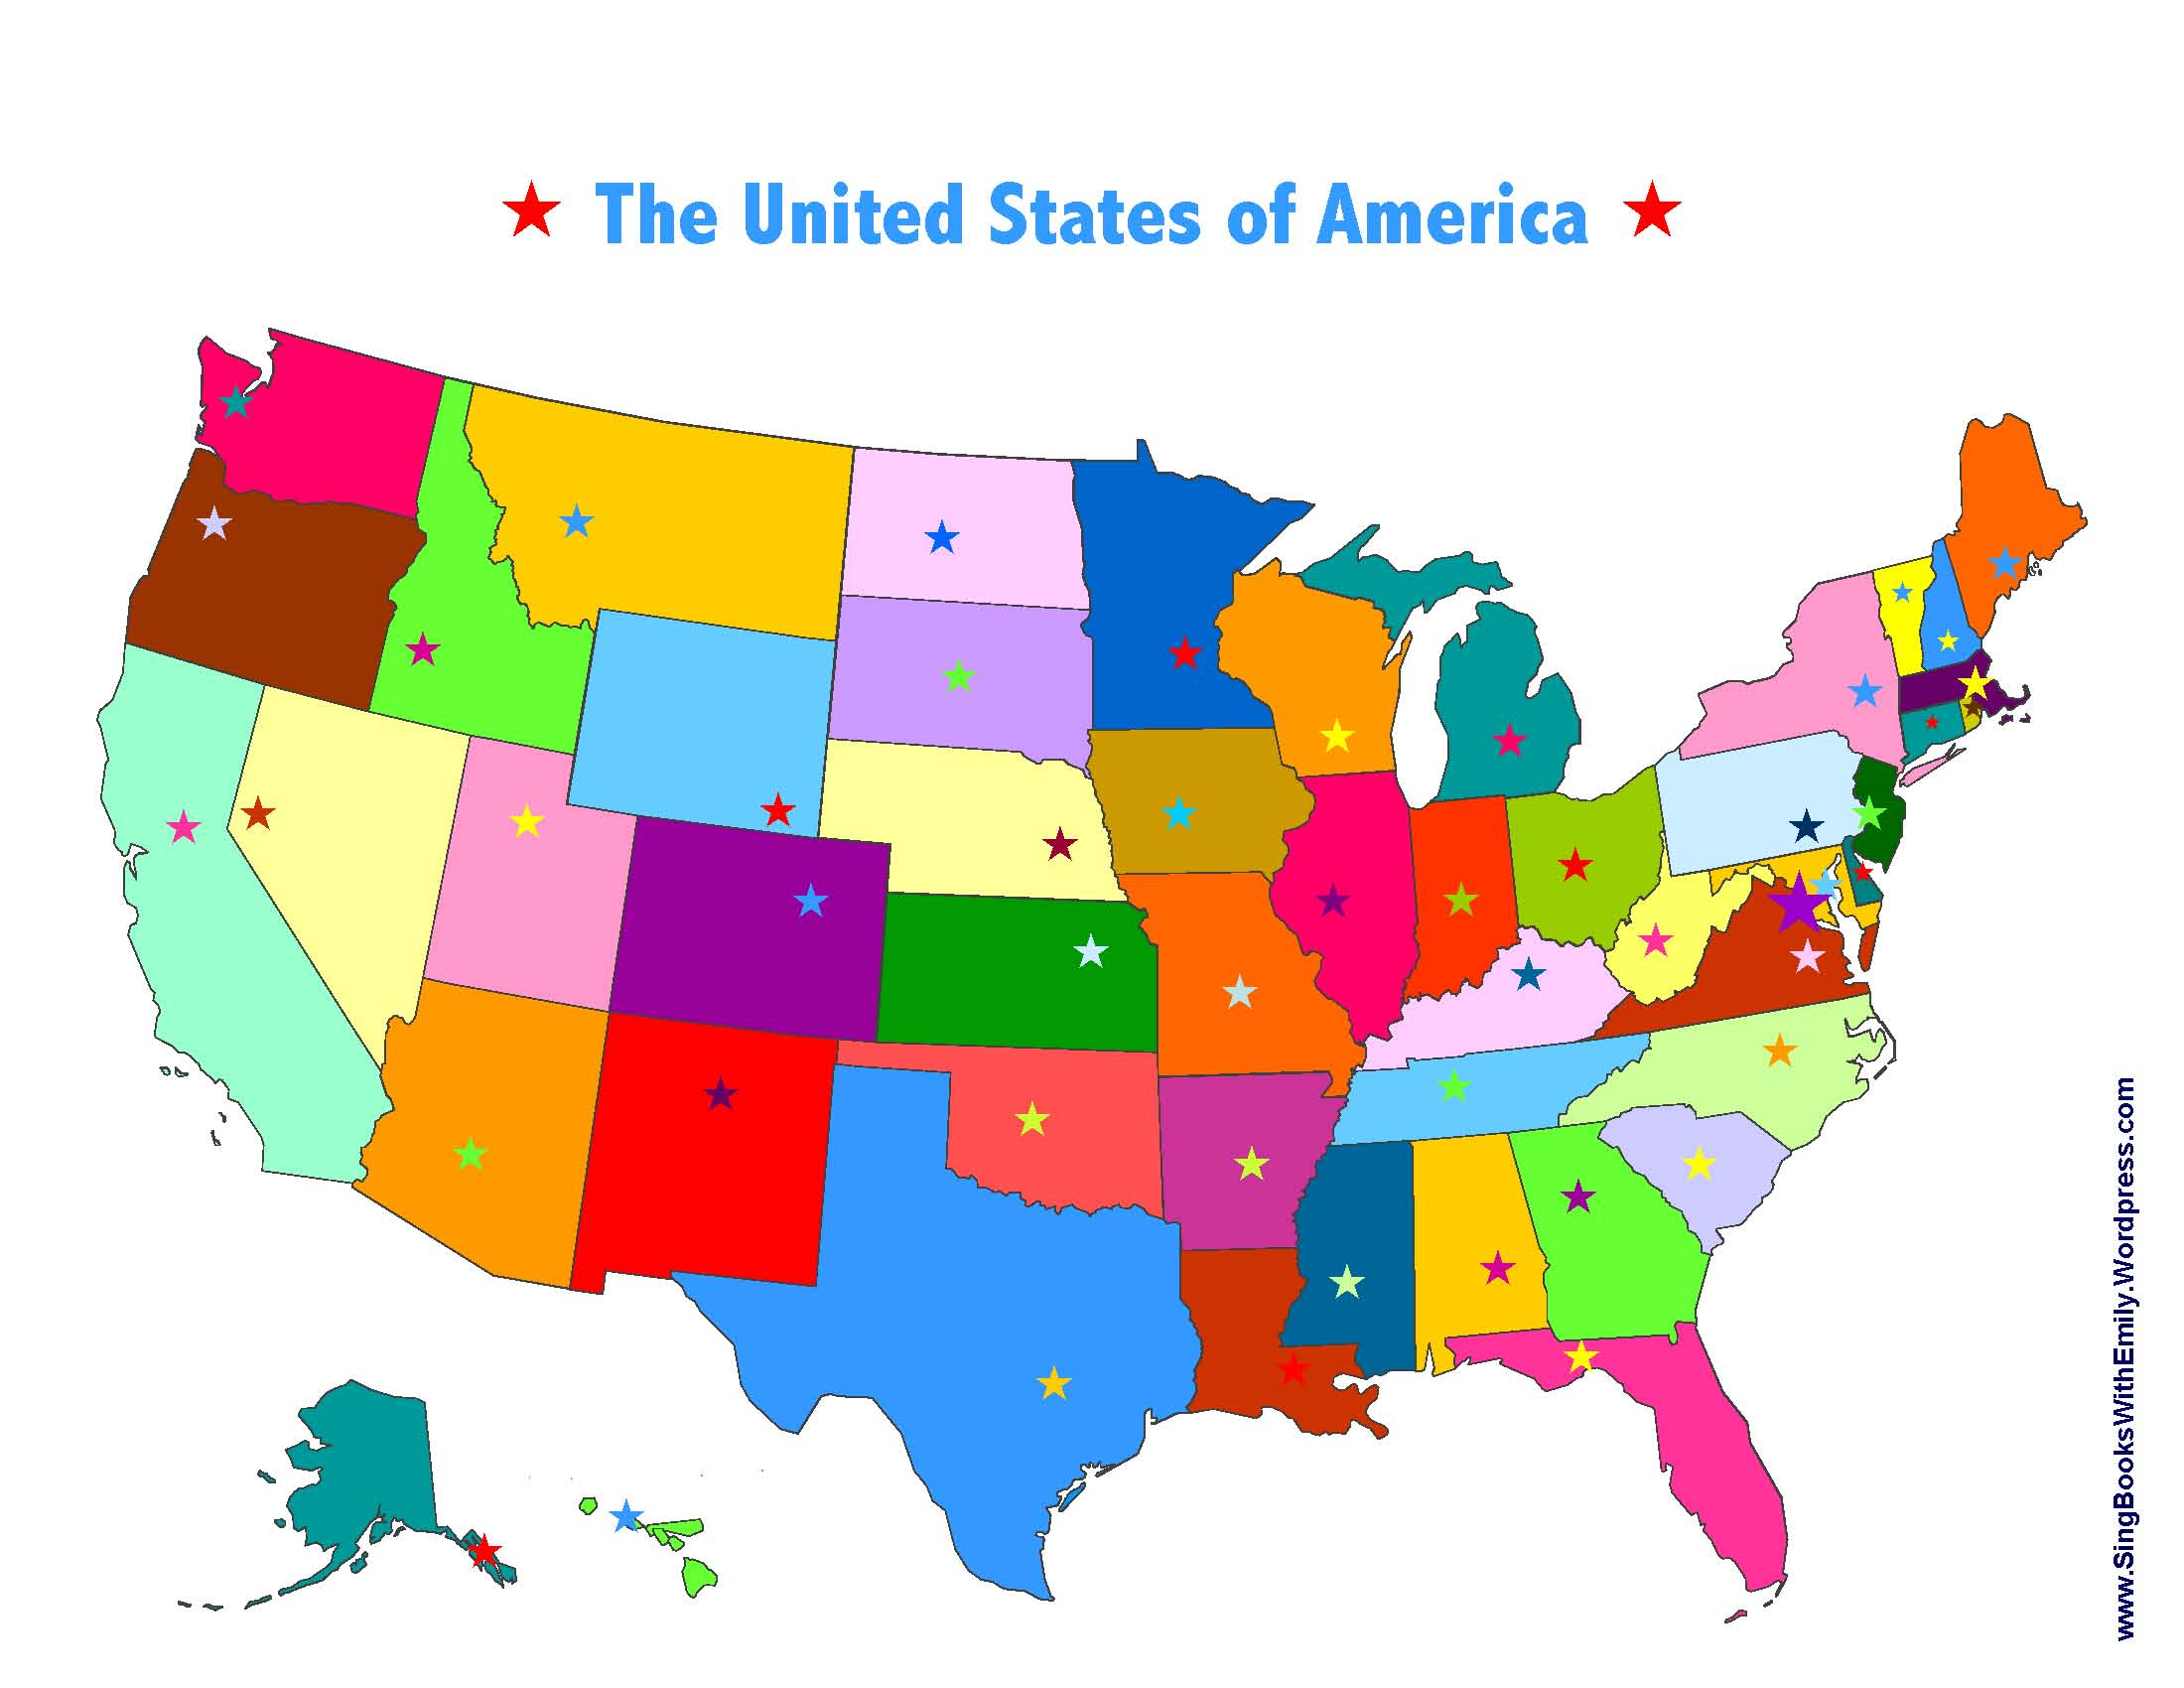 USA Maps Maps Of United States Of America USA US Chicago Location - Chicago map time zone